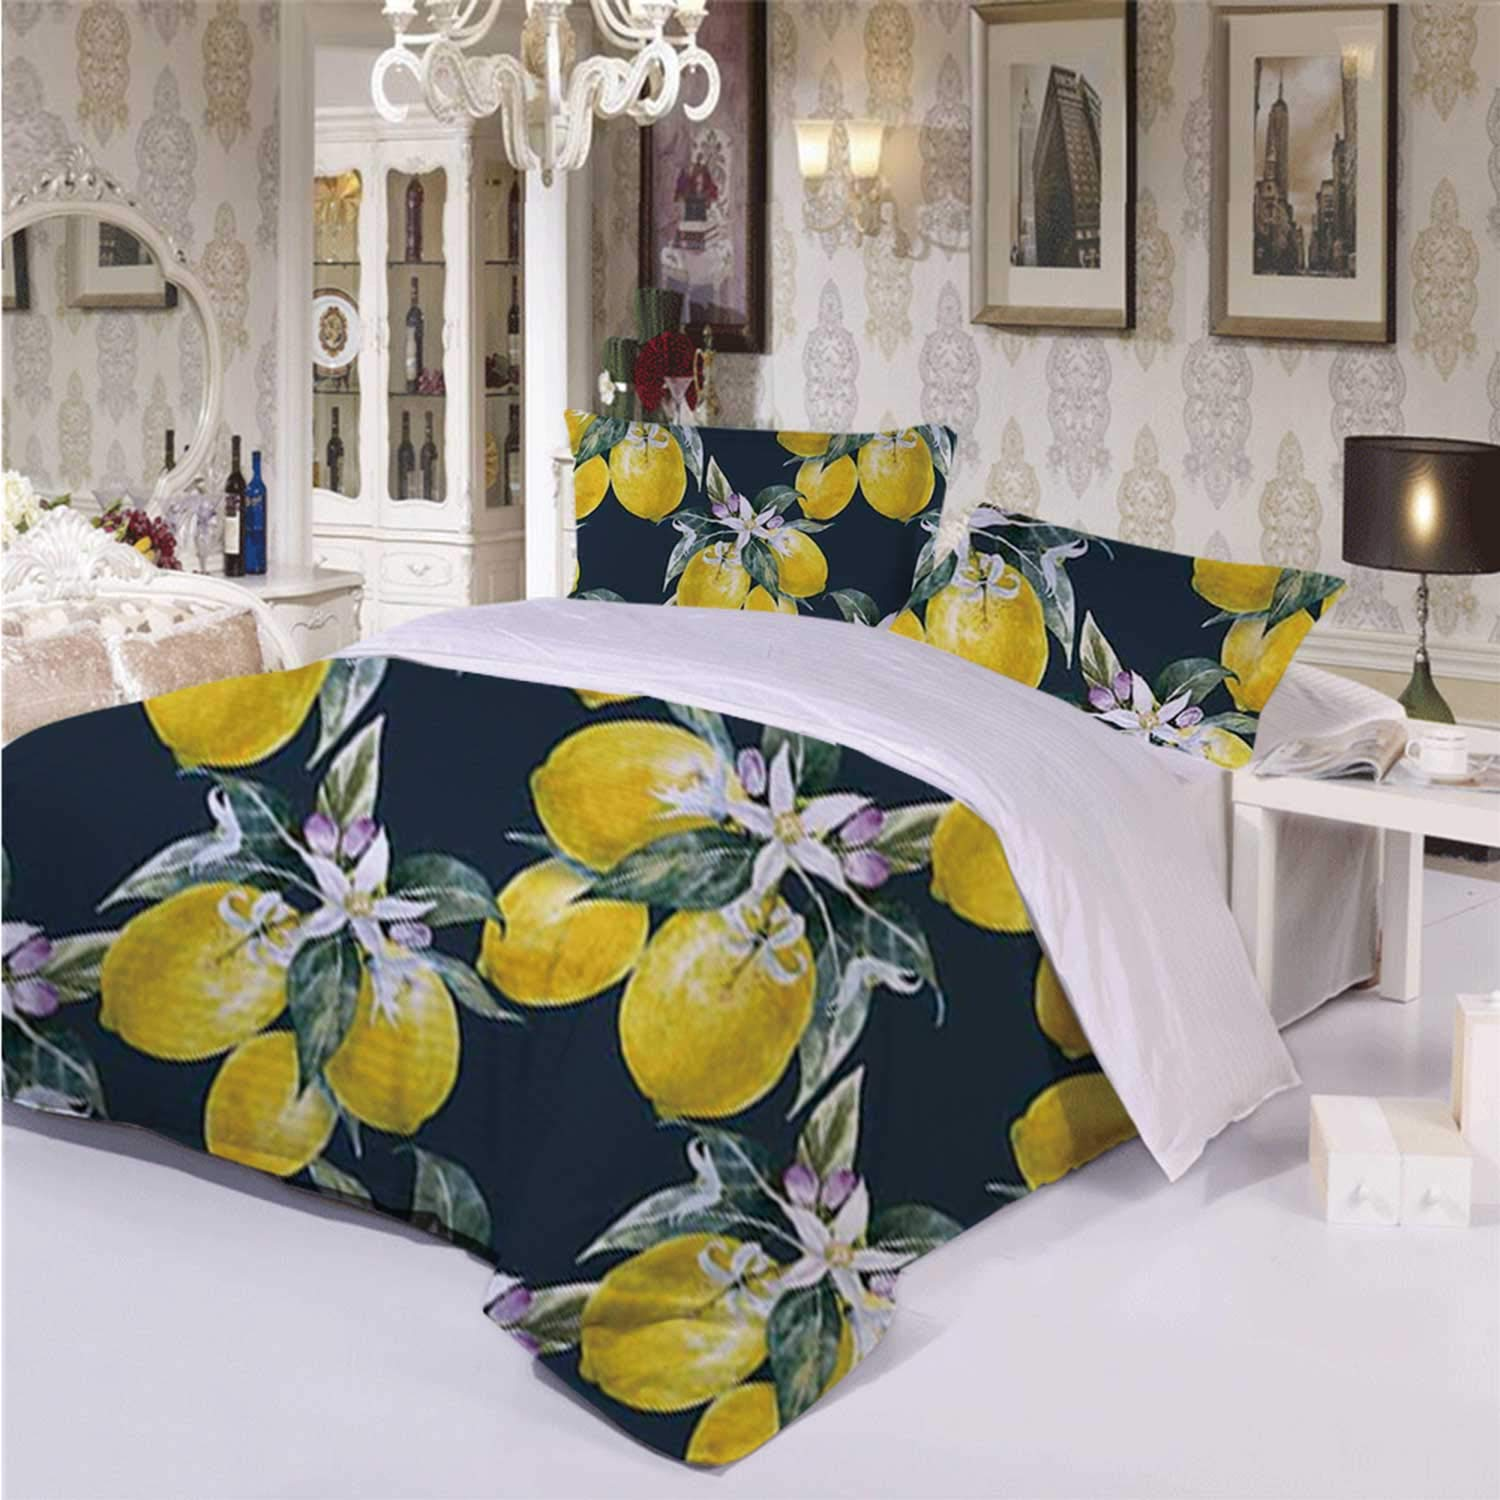 Floral Comfortable 3 Piece Bedding Set,Lemon Tree with Flowering Plant Blooms Botany Eco Evergreen Leaves Artwork for Hotel,Twin